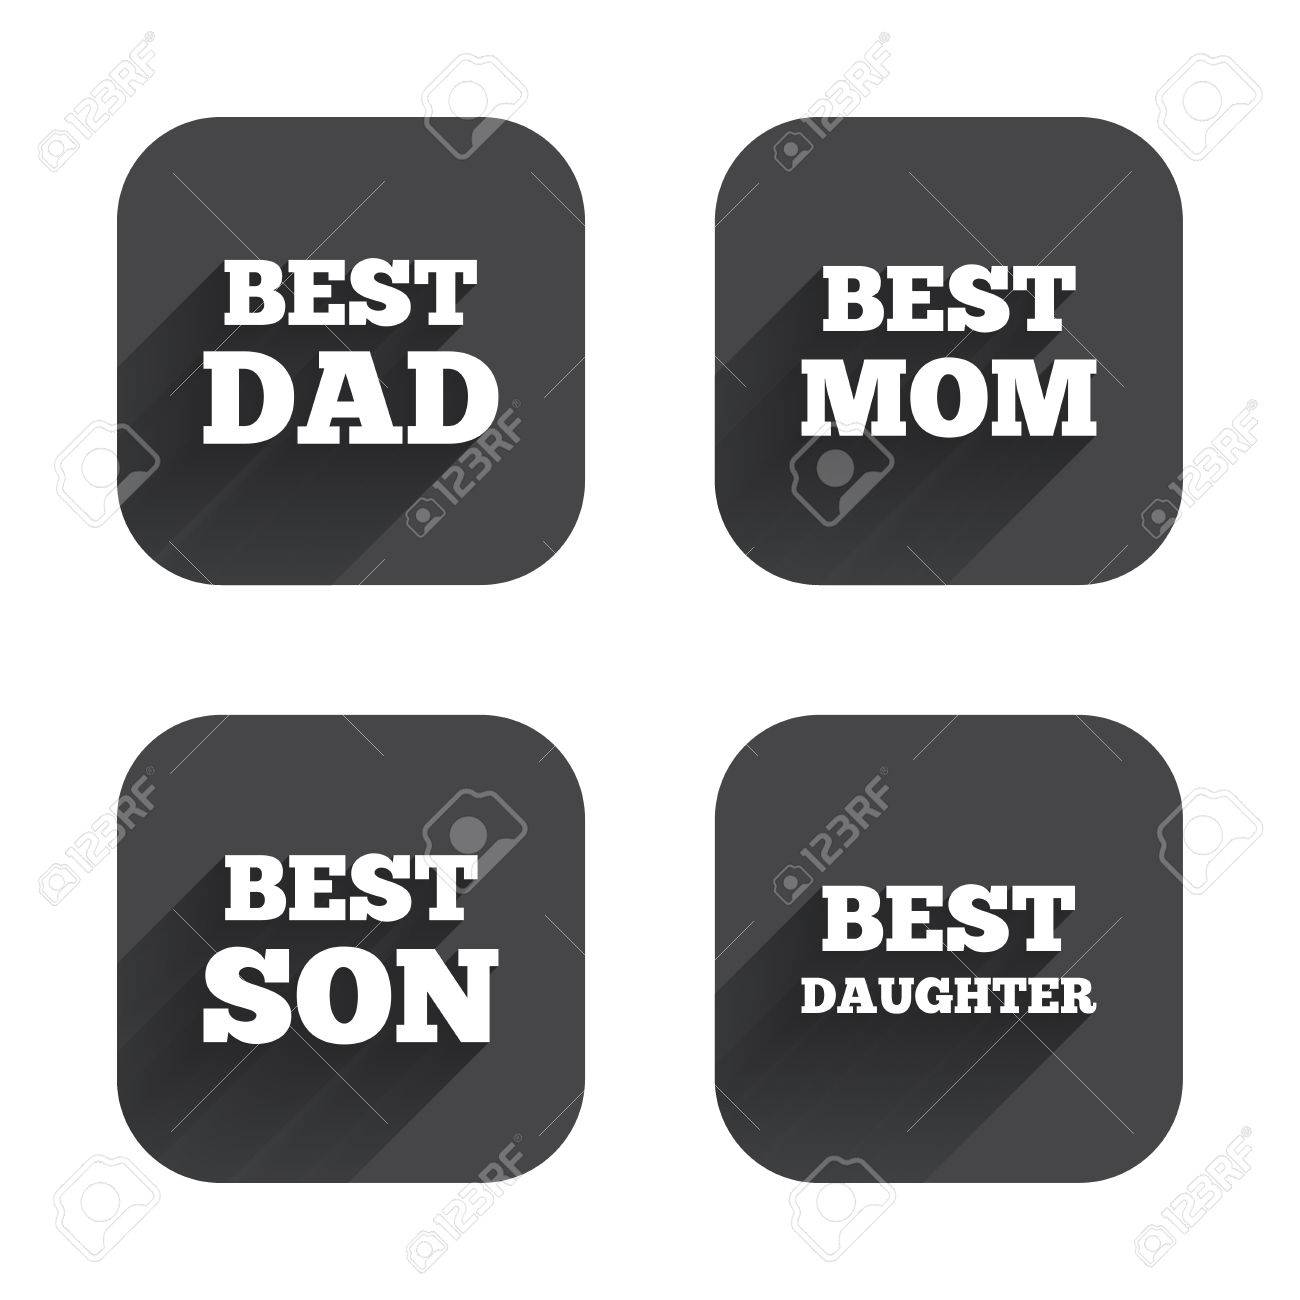 Best Mom And Dad Son And Daughter Icons Award Symbols Square